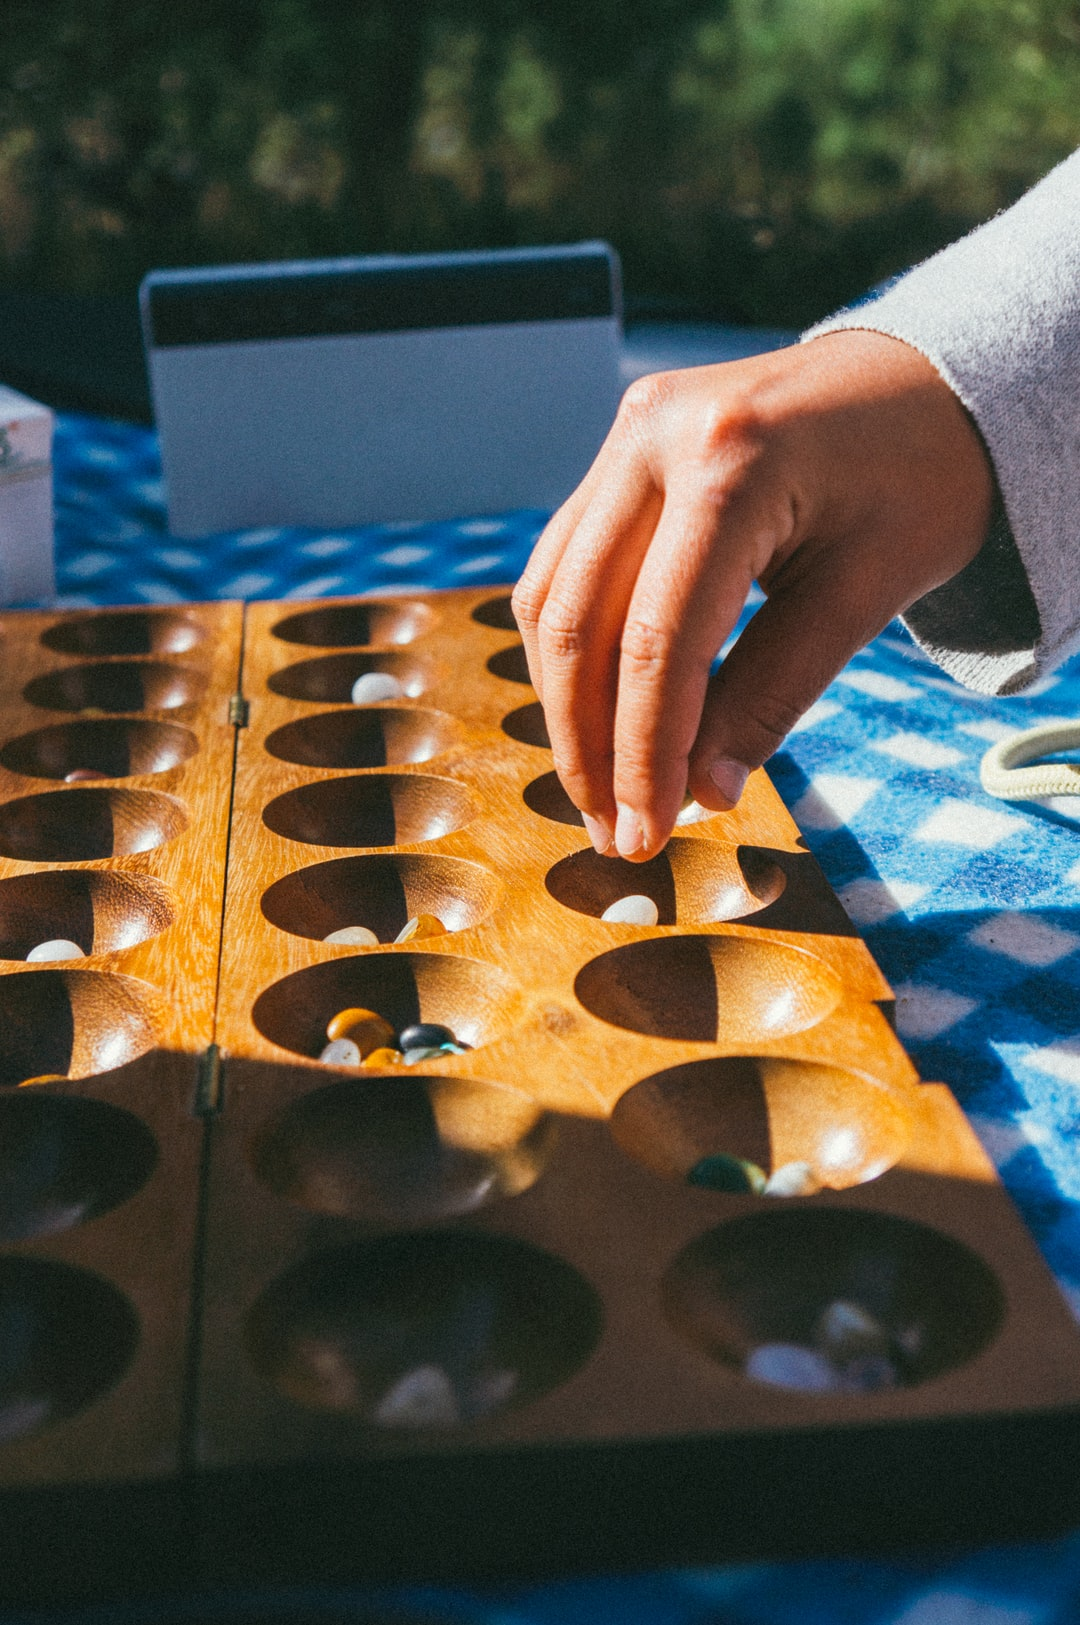 Person playing mancala the game